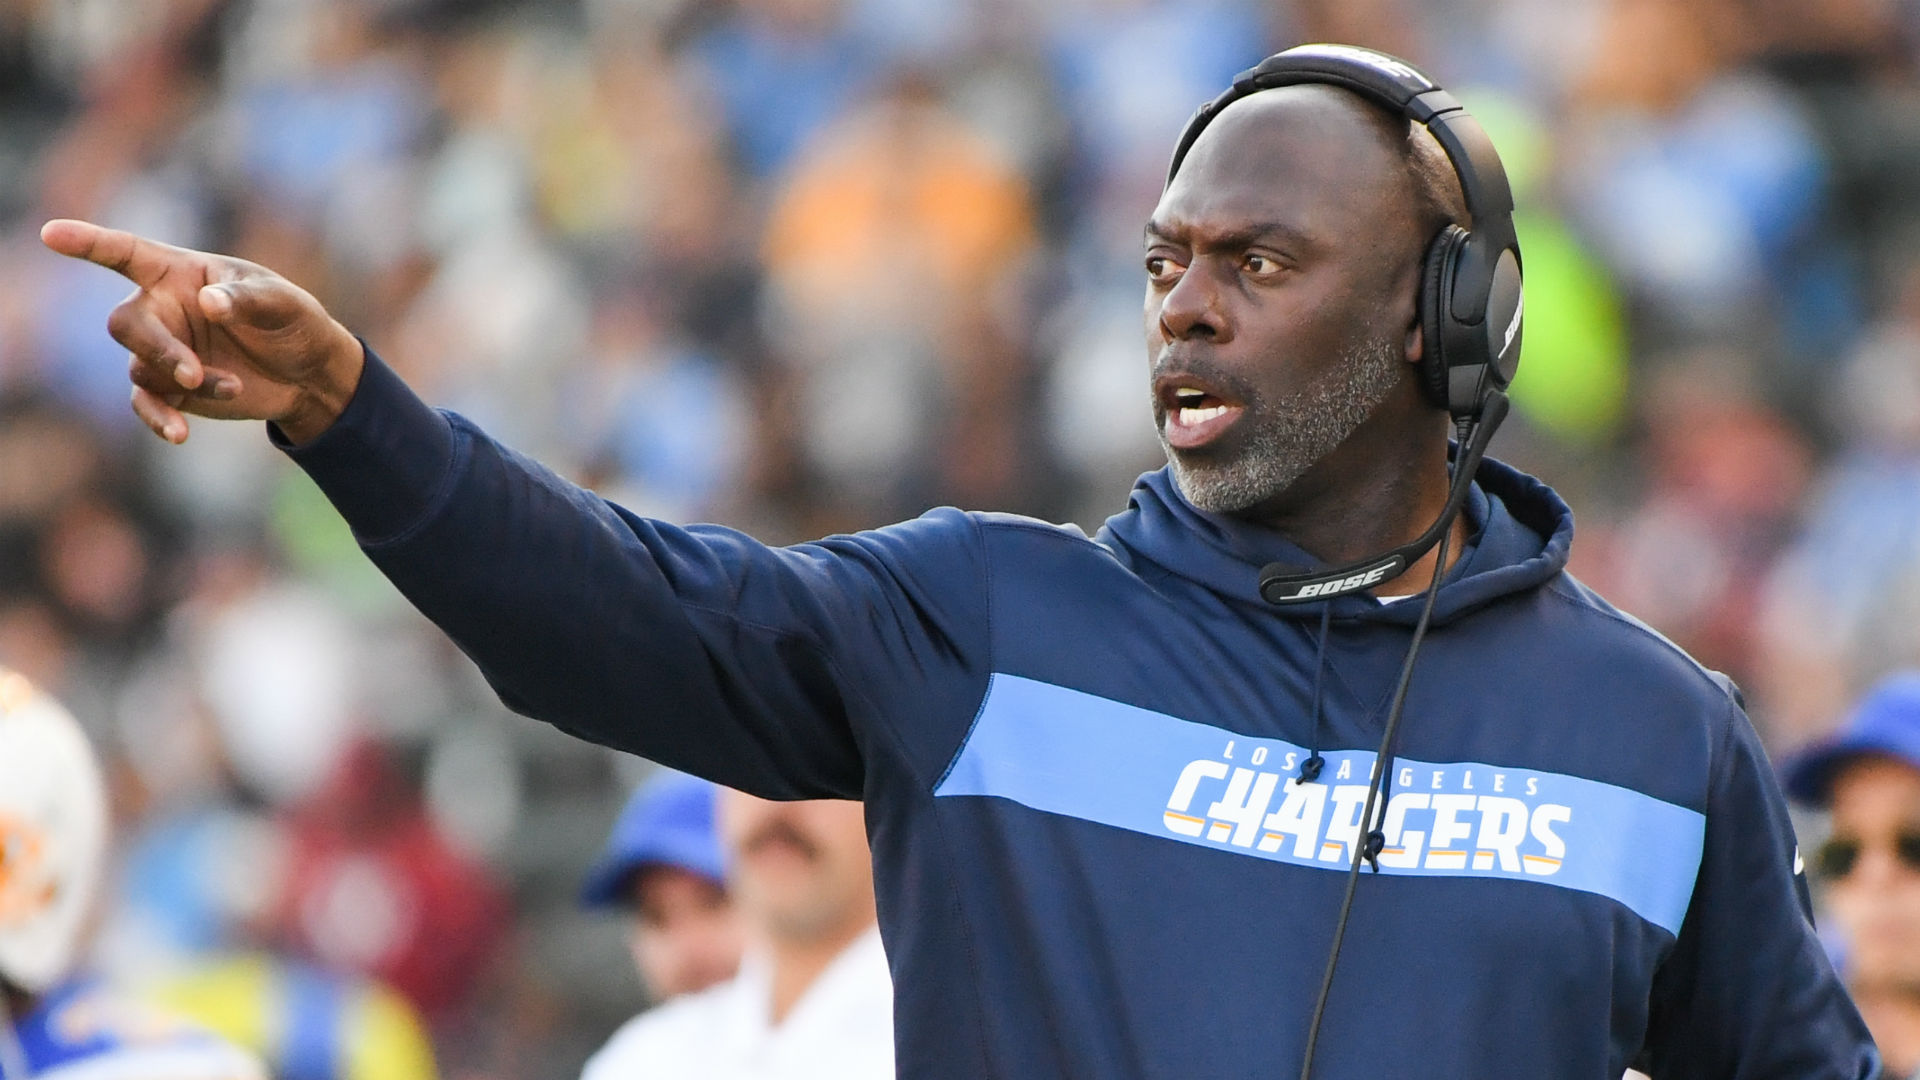 Chargers coach Anthony Lynn has NFL